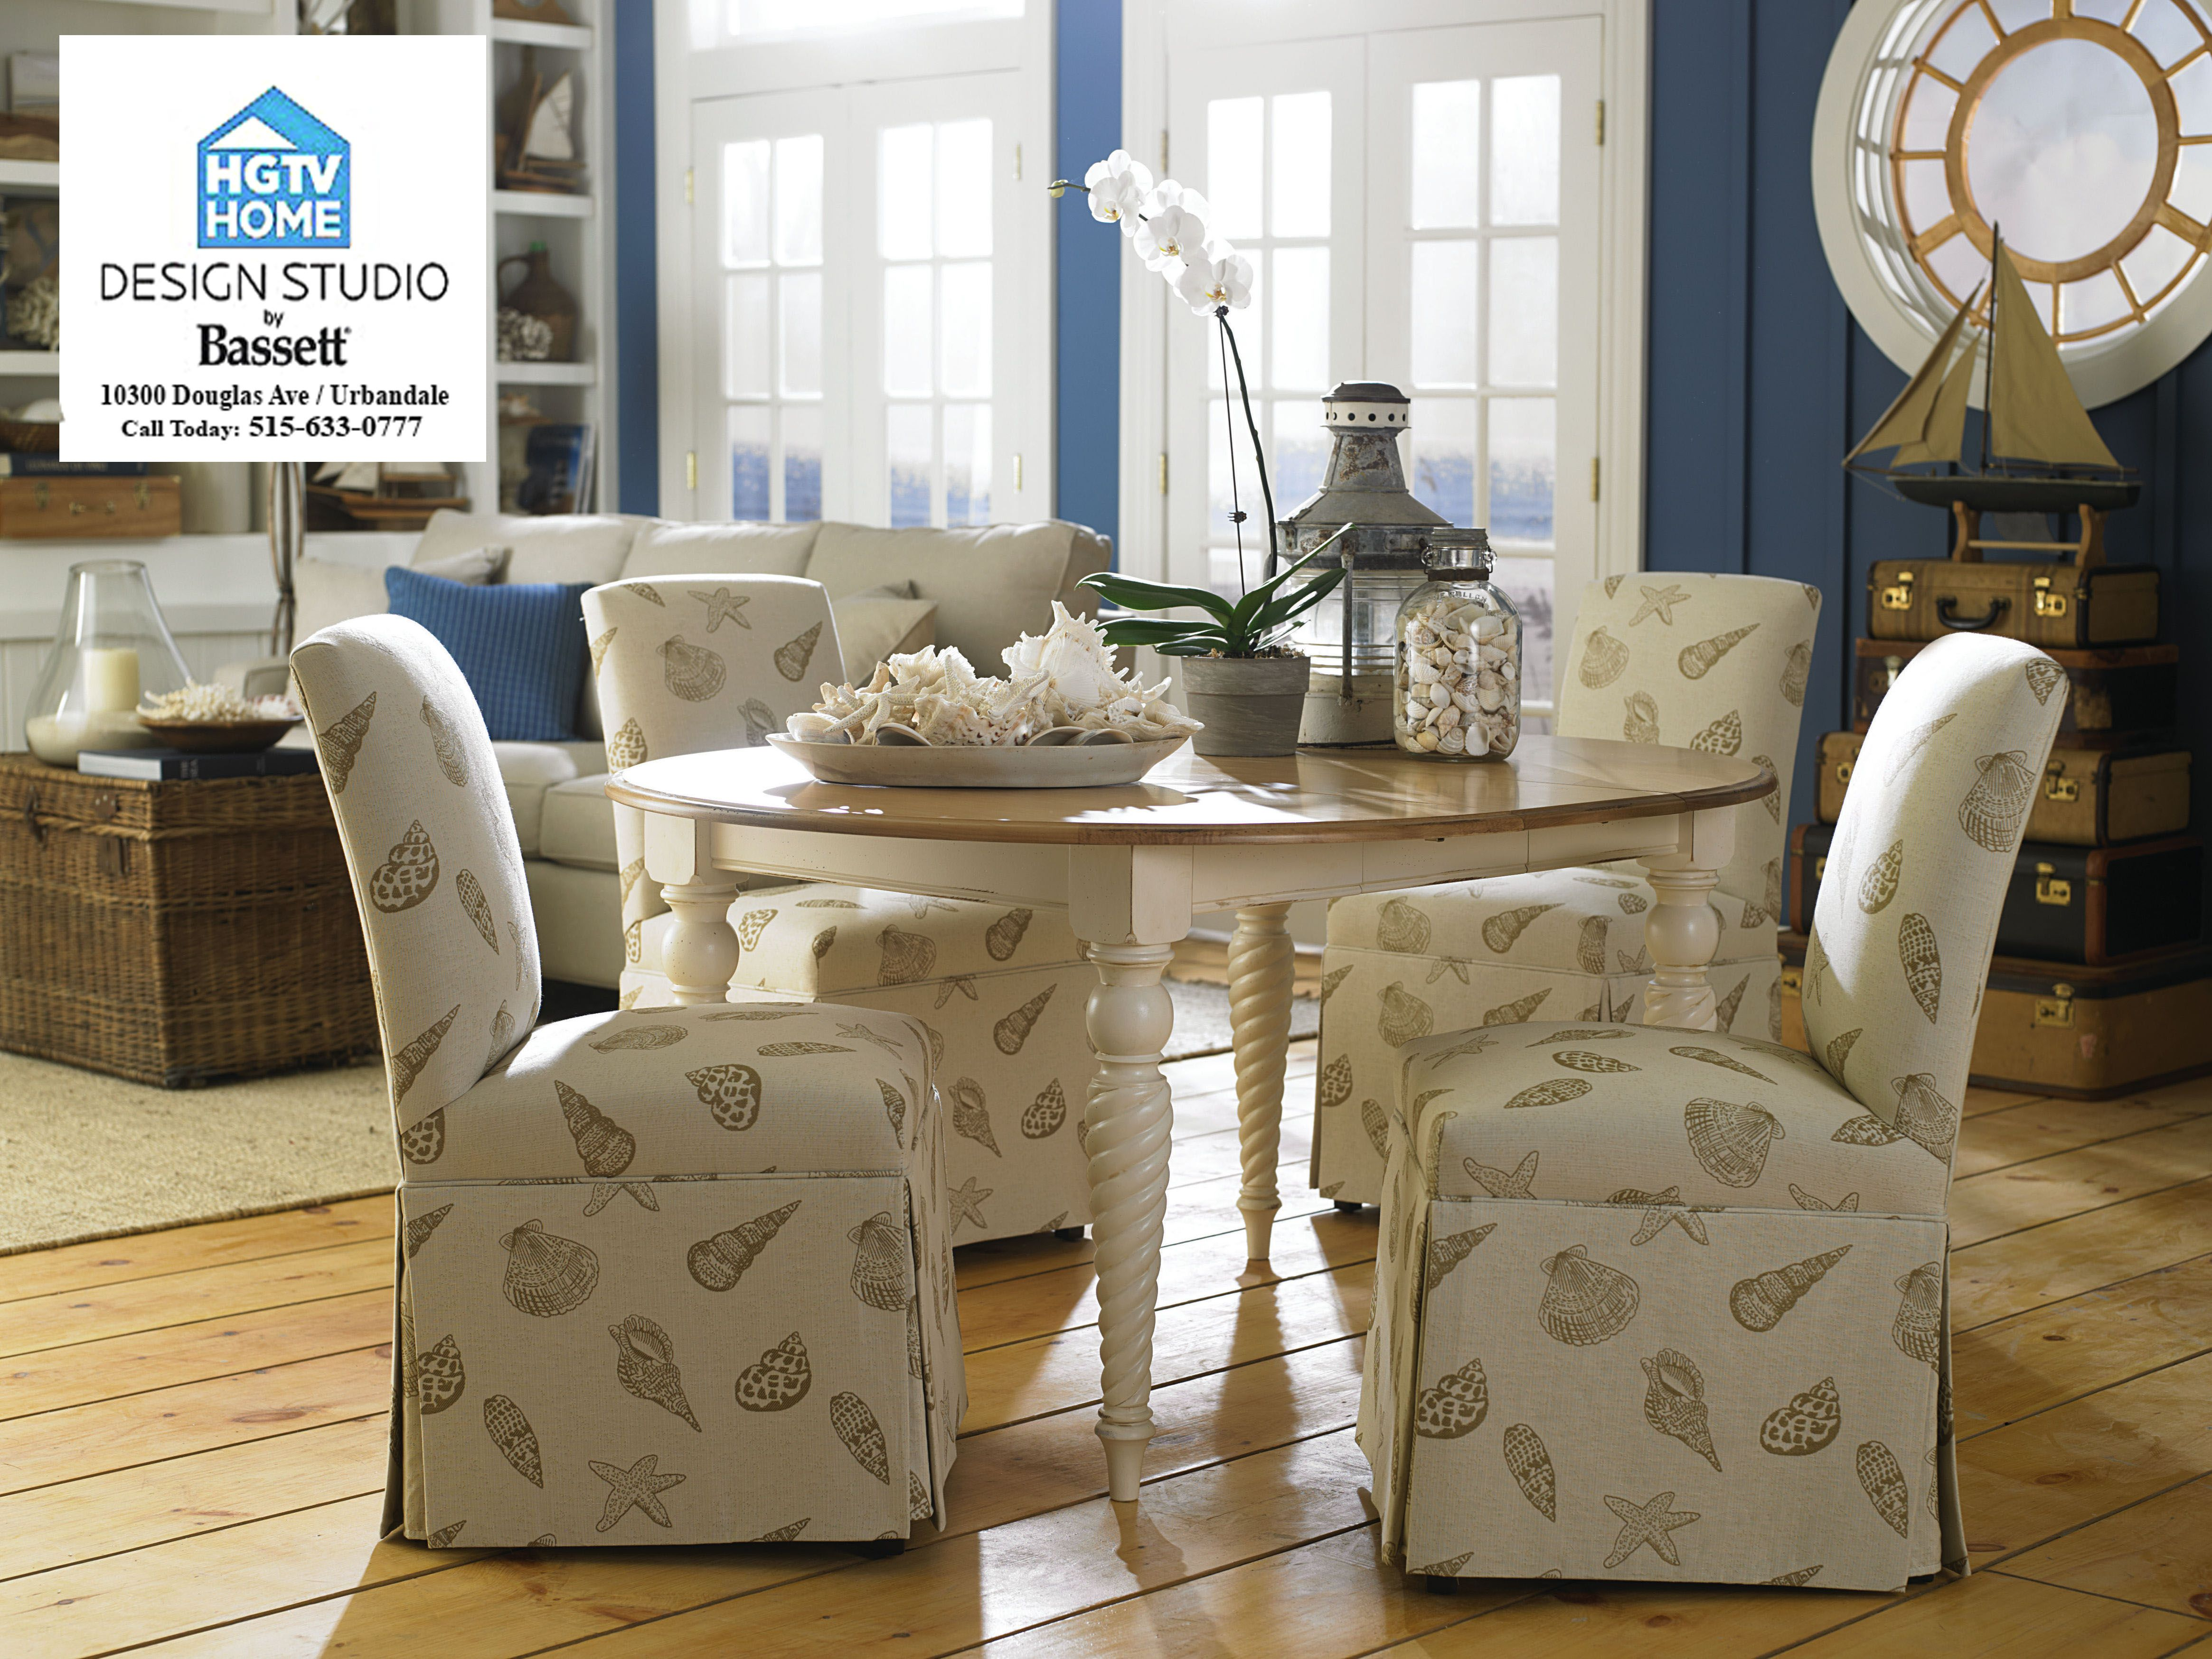 The HGTV Home Design Studio by Bett is unique among Des ... Hgtv Home Design Studio on hgtv home garden, hgtv home library, hgtv home drawing, hgtv home furniture, hgtv home store, hgtv home paint, hgtv living rooms, hgtv home interiors, hgtv home fabrics, hgtv kitchen design,